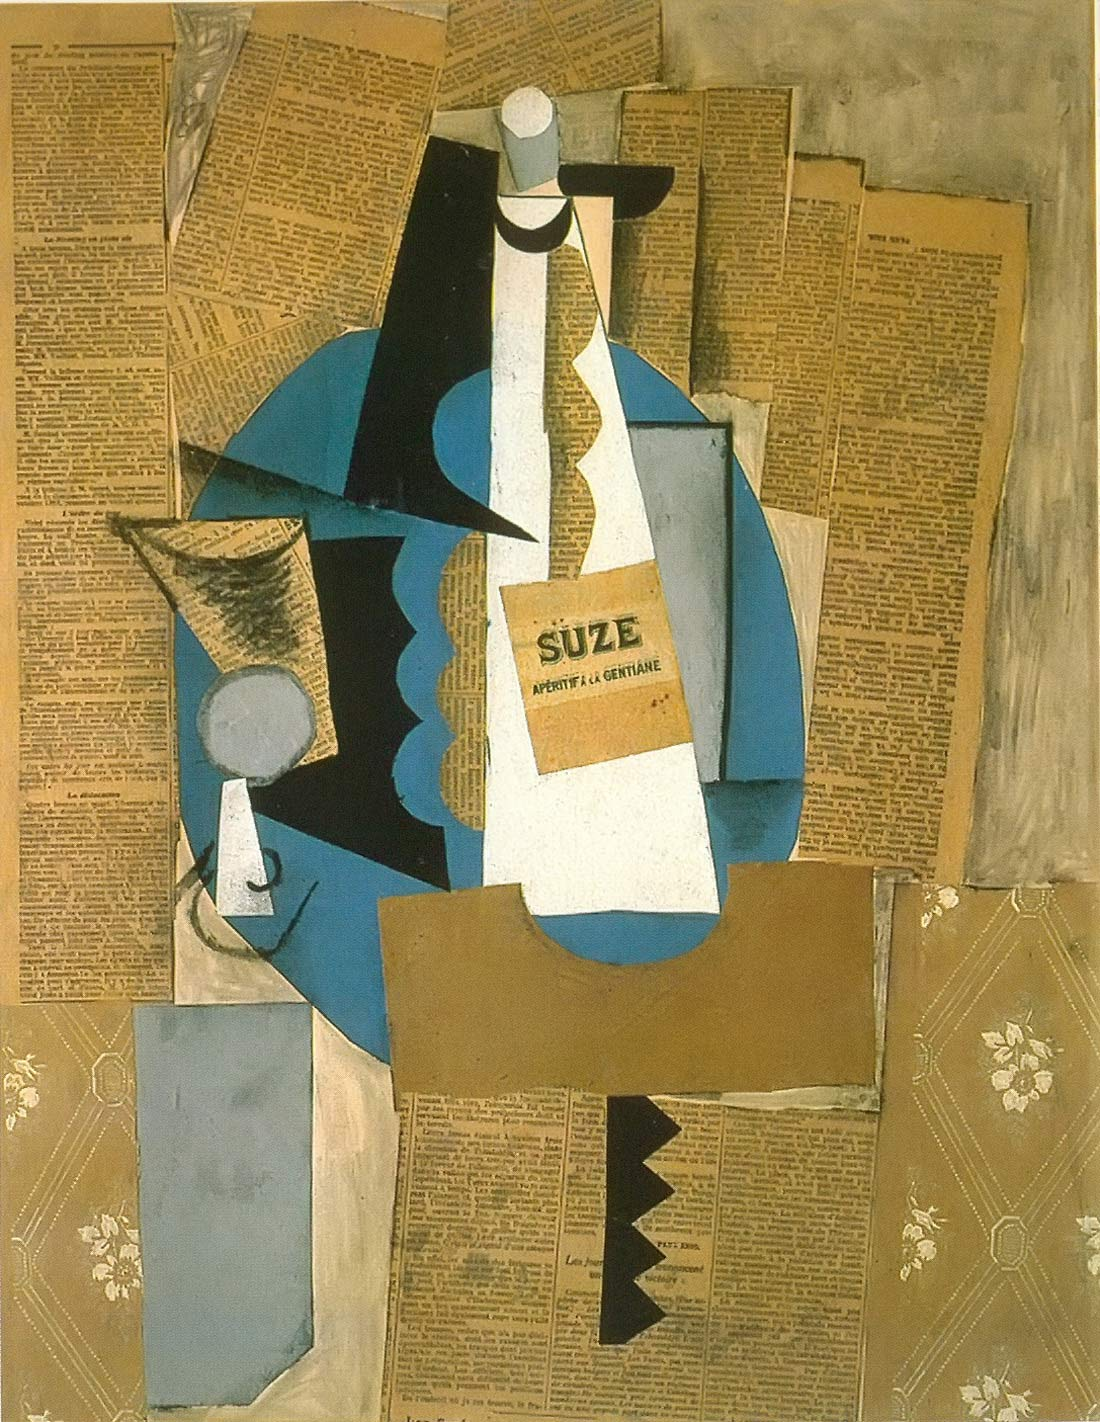 Glass And Bottle Of Suze Pablo Picasso